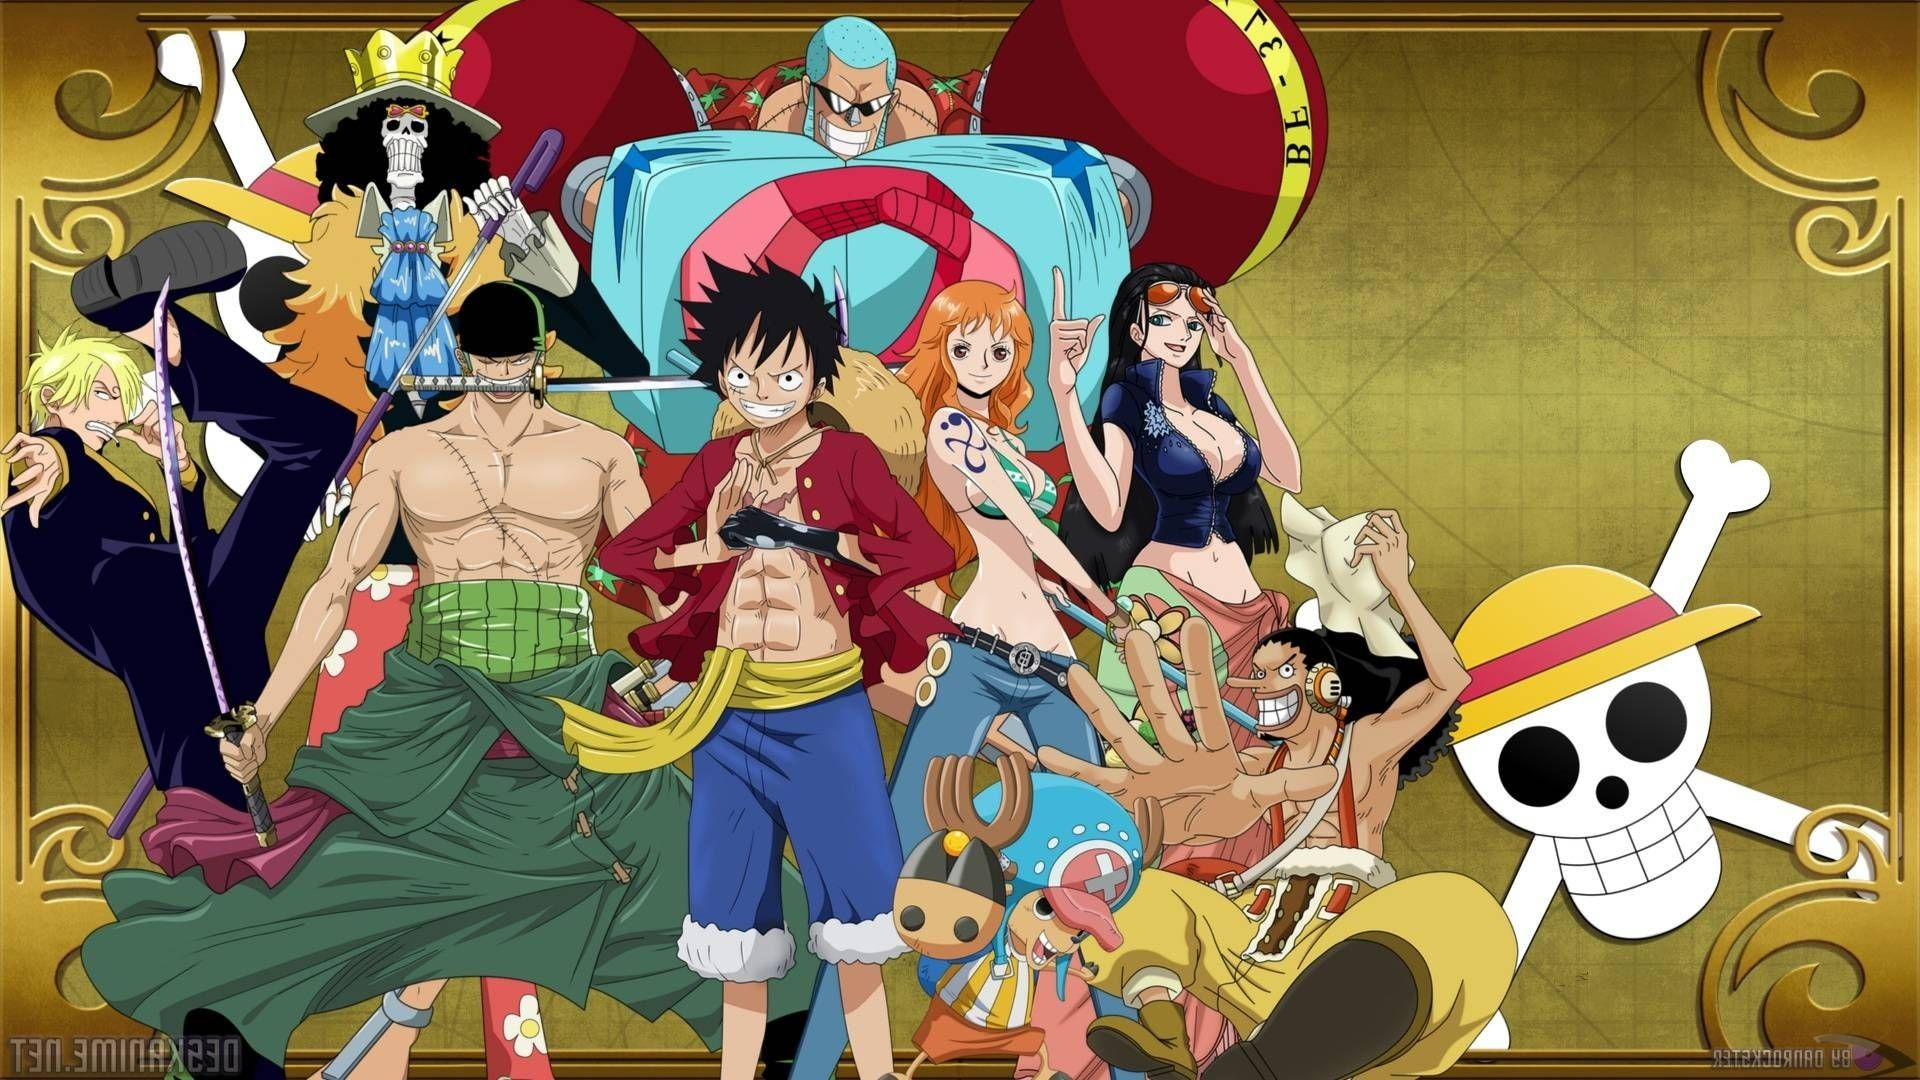 Unique One Piece Wallpaper Phone Hd Anime One Piece Background One Piece Wallpaper Iphone